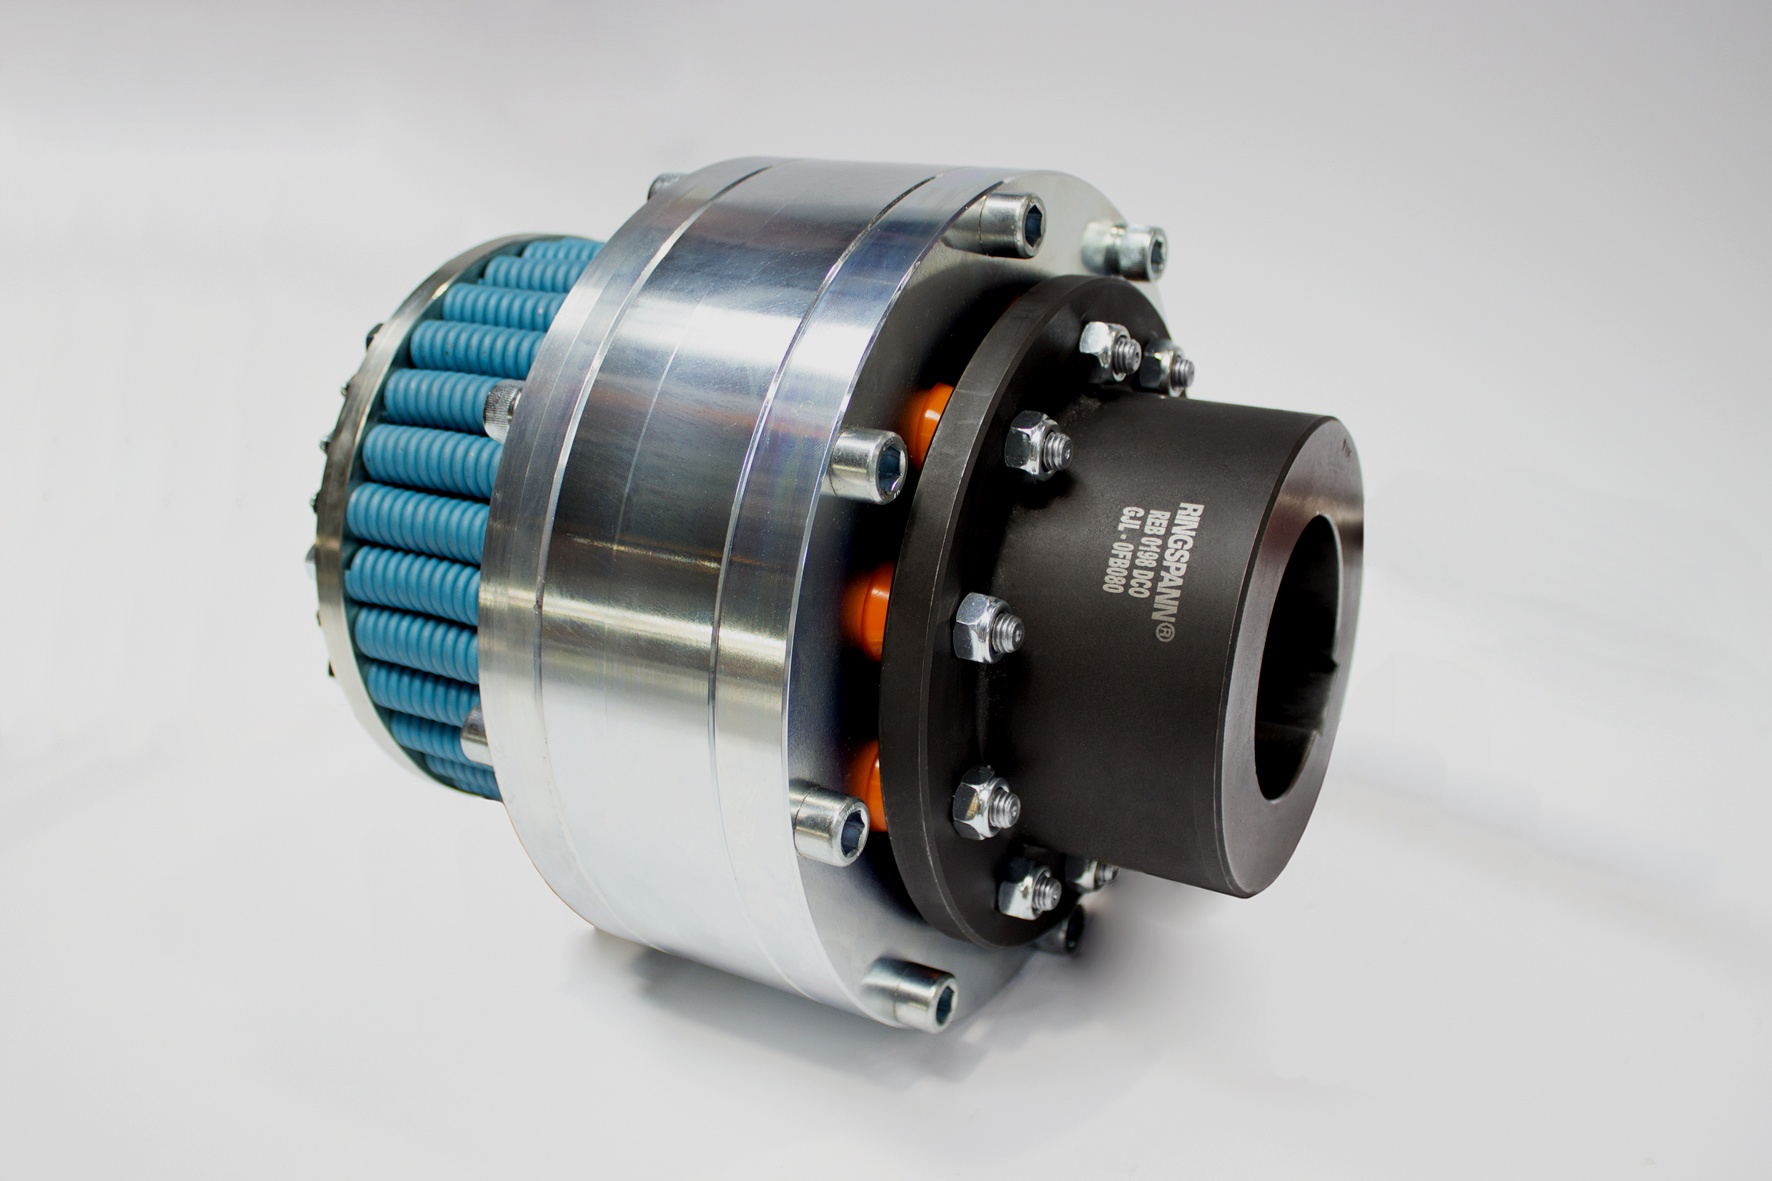 Ready-to-install Smart Solution consisting of shaft coupling and overload protection